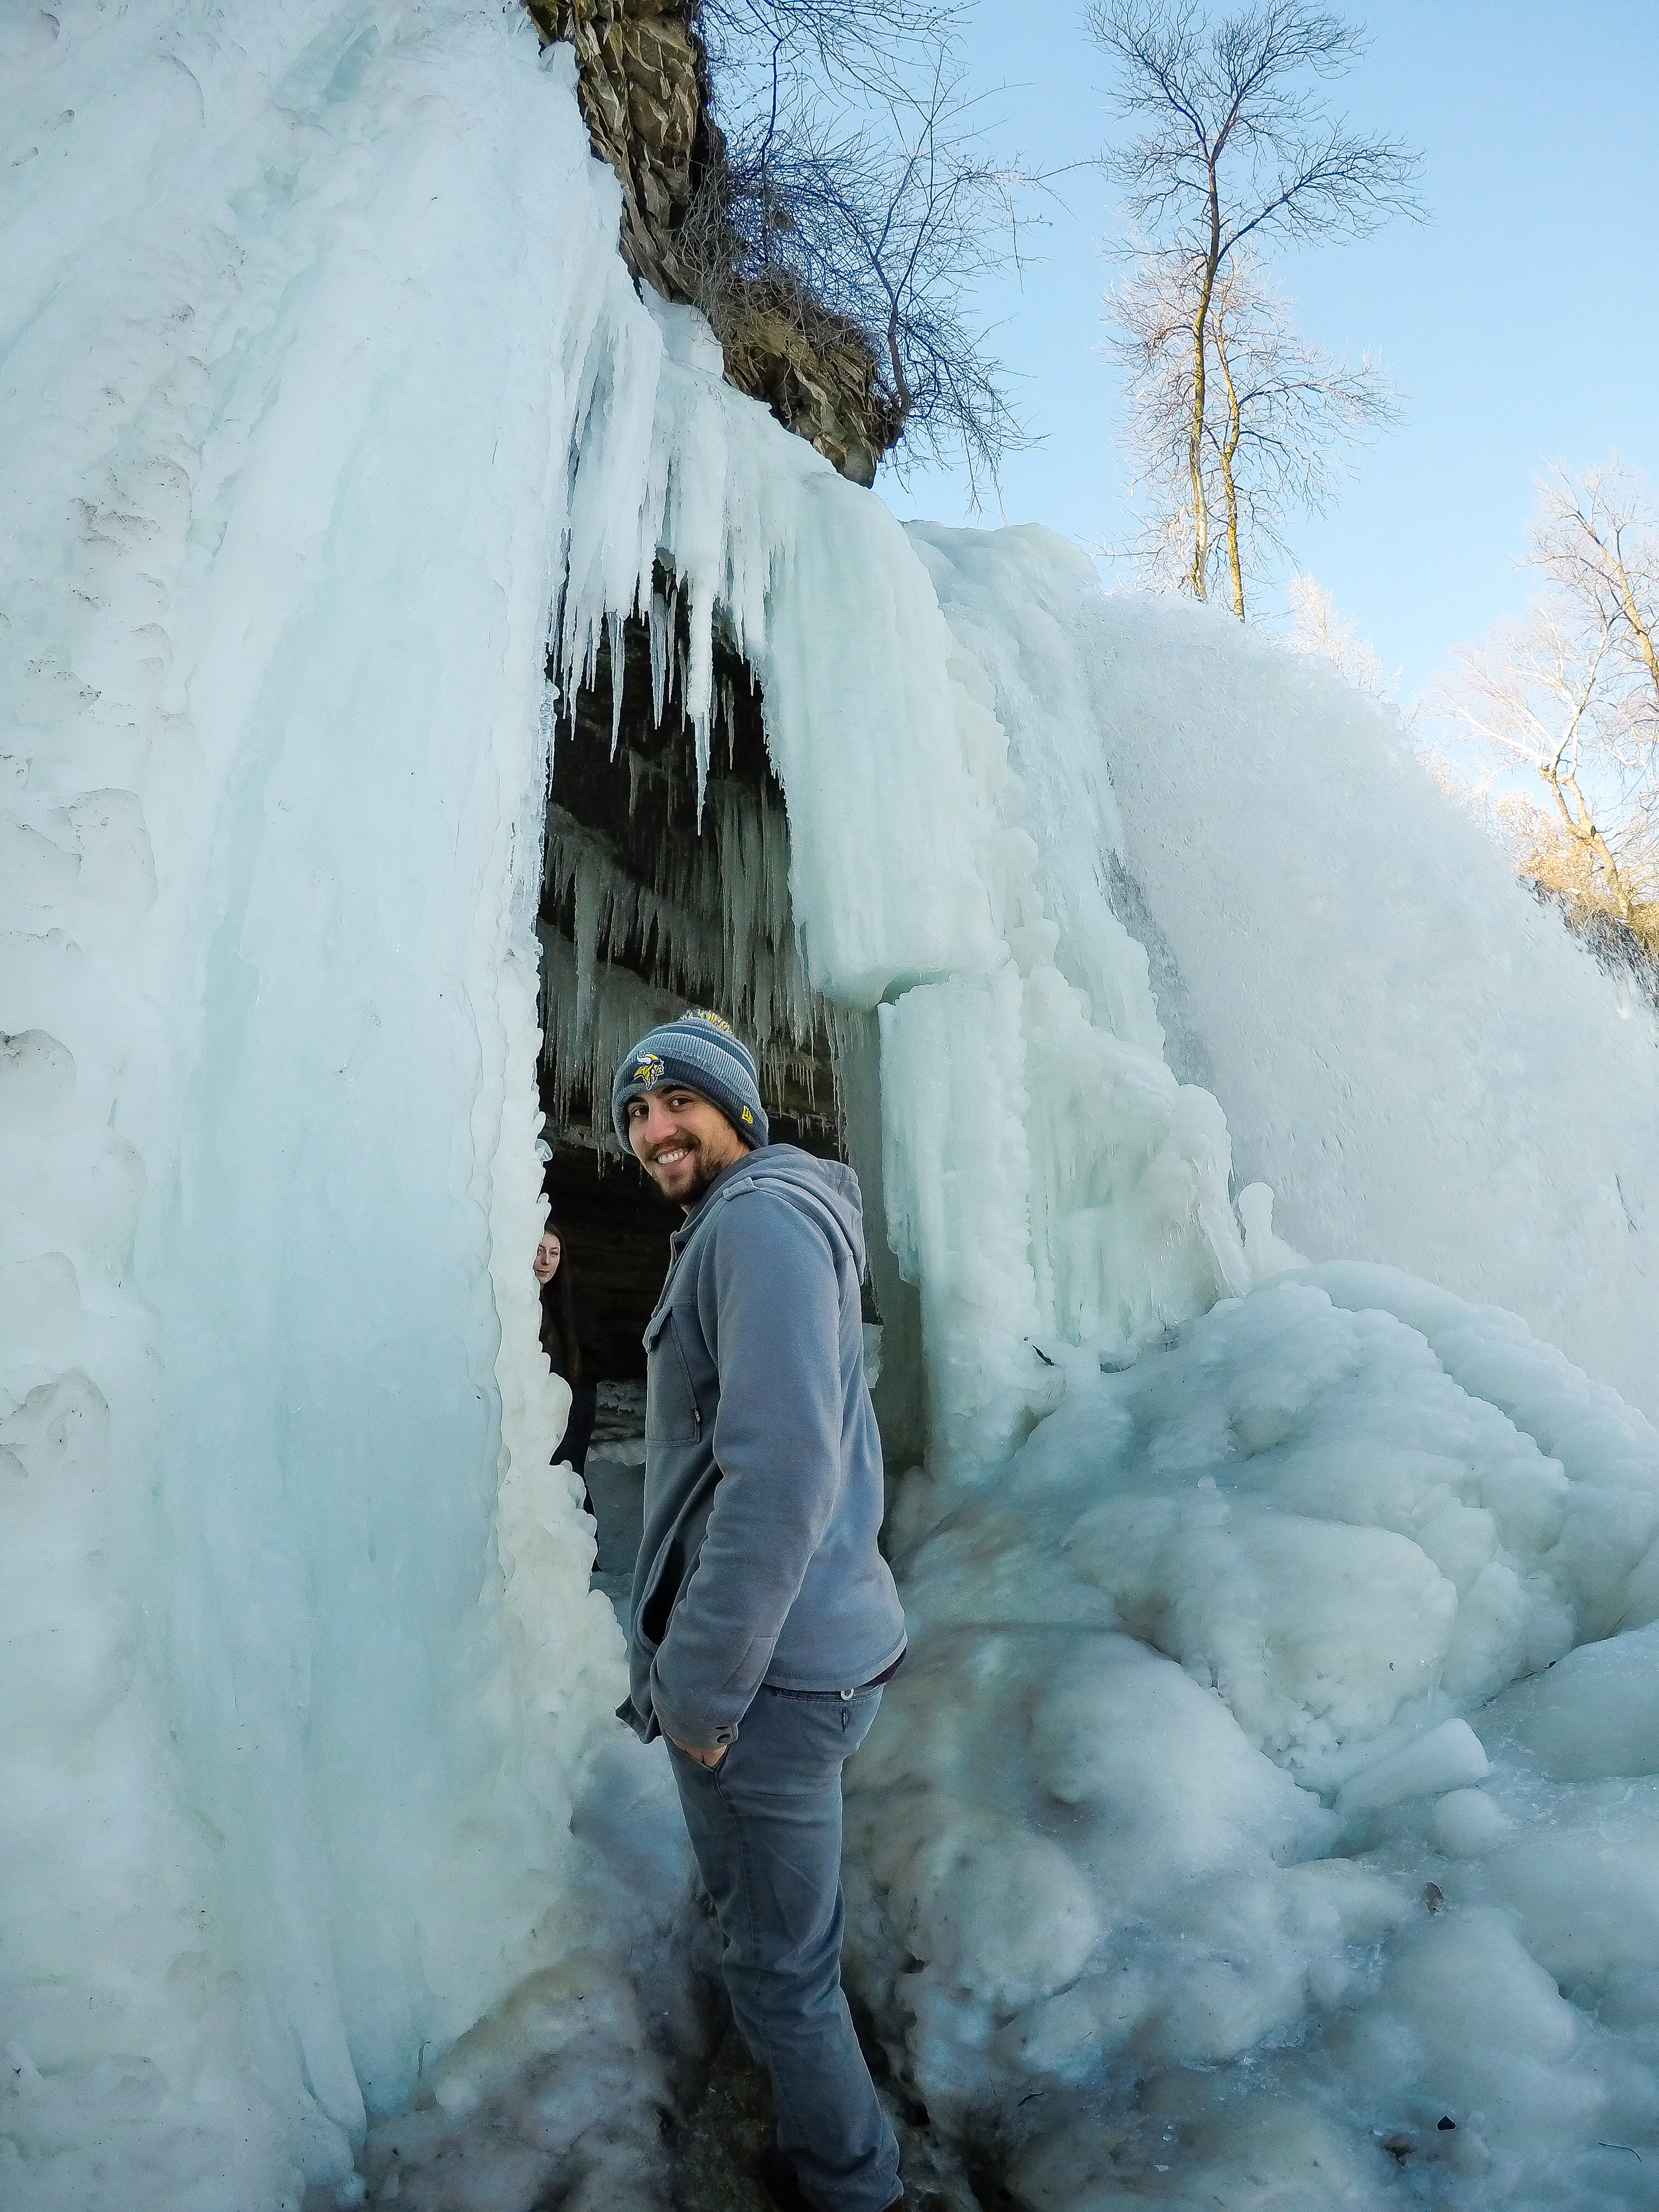 About to enter the cave created by the frozen falls